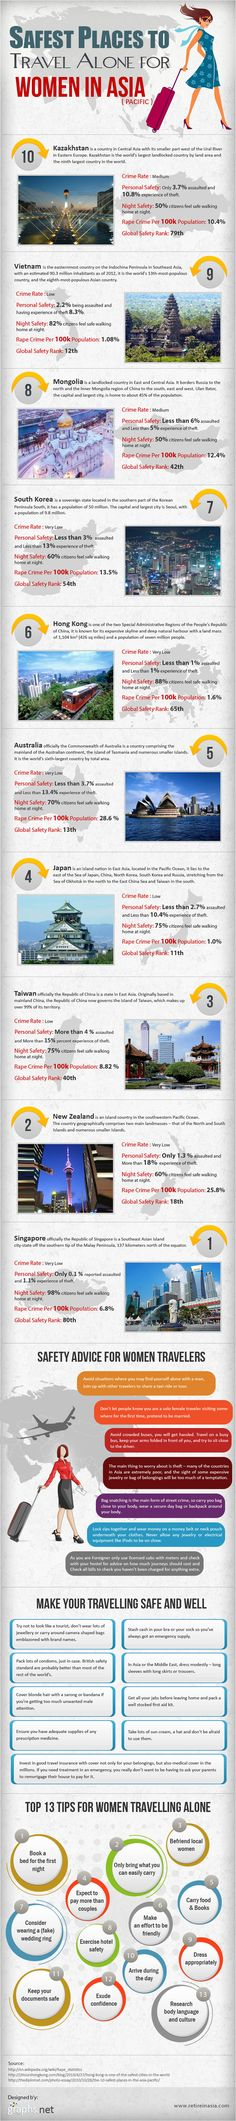 Safest Places to Travel alone for Women in #Asia